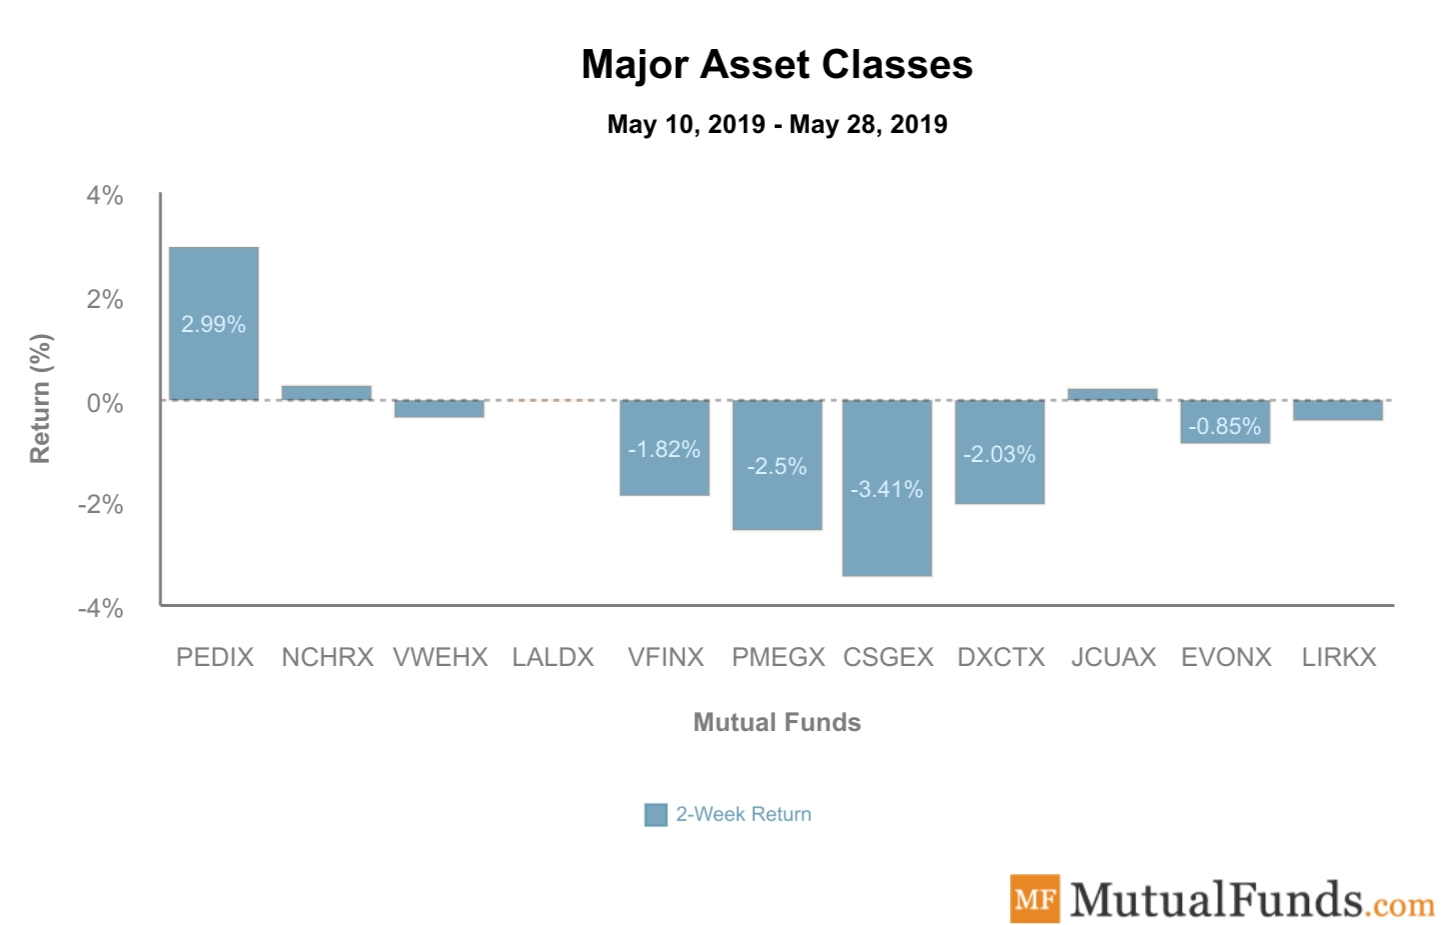 Major Asset Classes performance - May 28, 2019